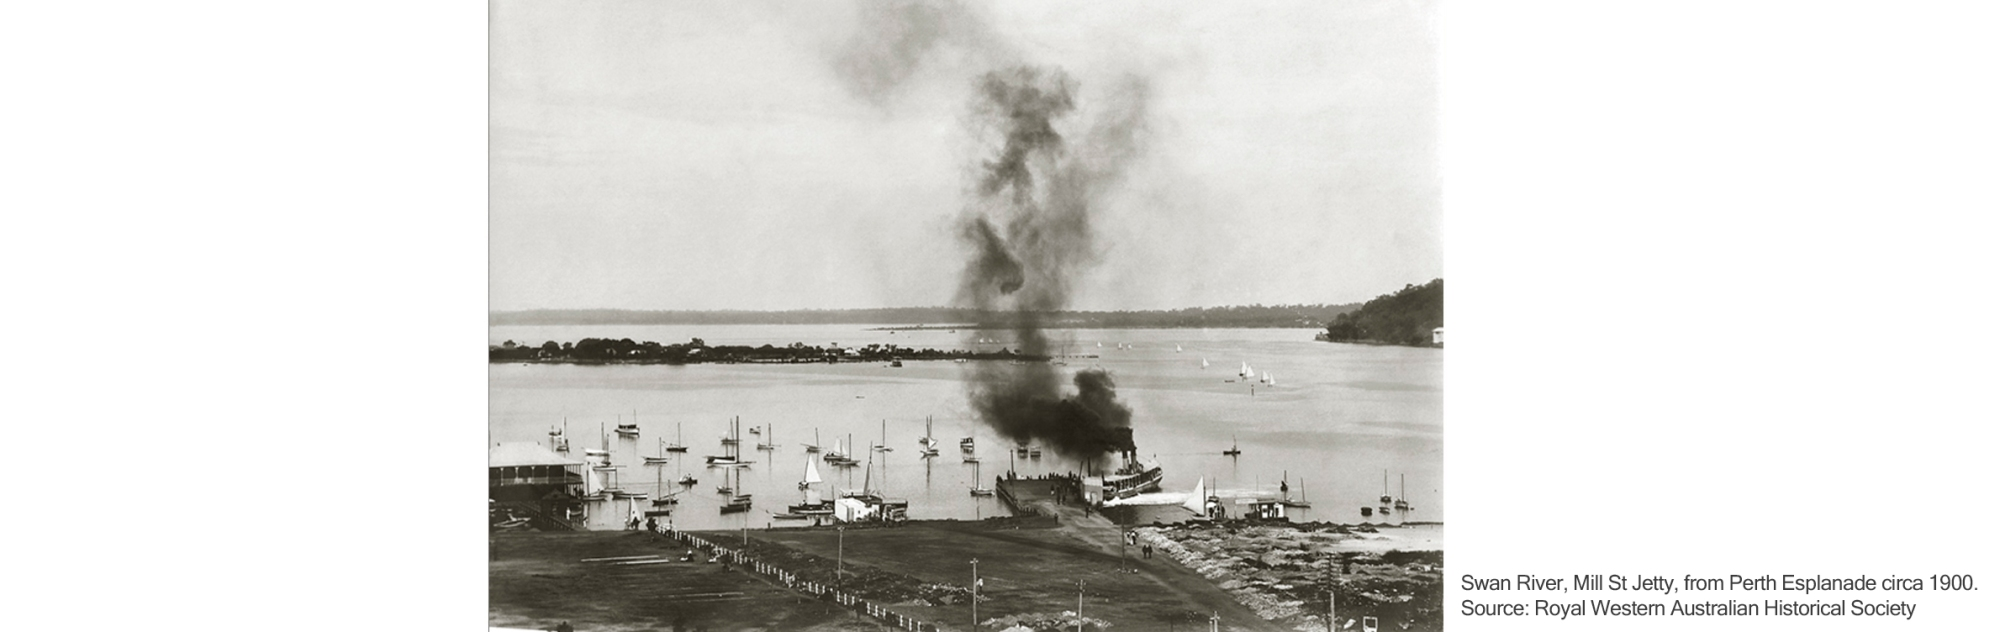 Swan River, Mill St Jetty, from Perth Esplanade circa 1900. Source: Royal Western Australian Historical Society